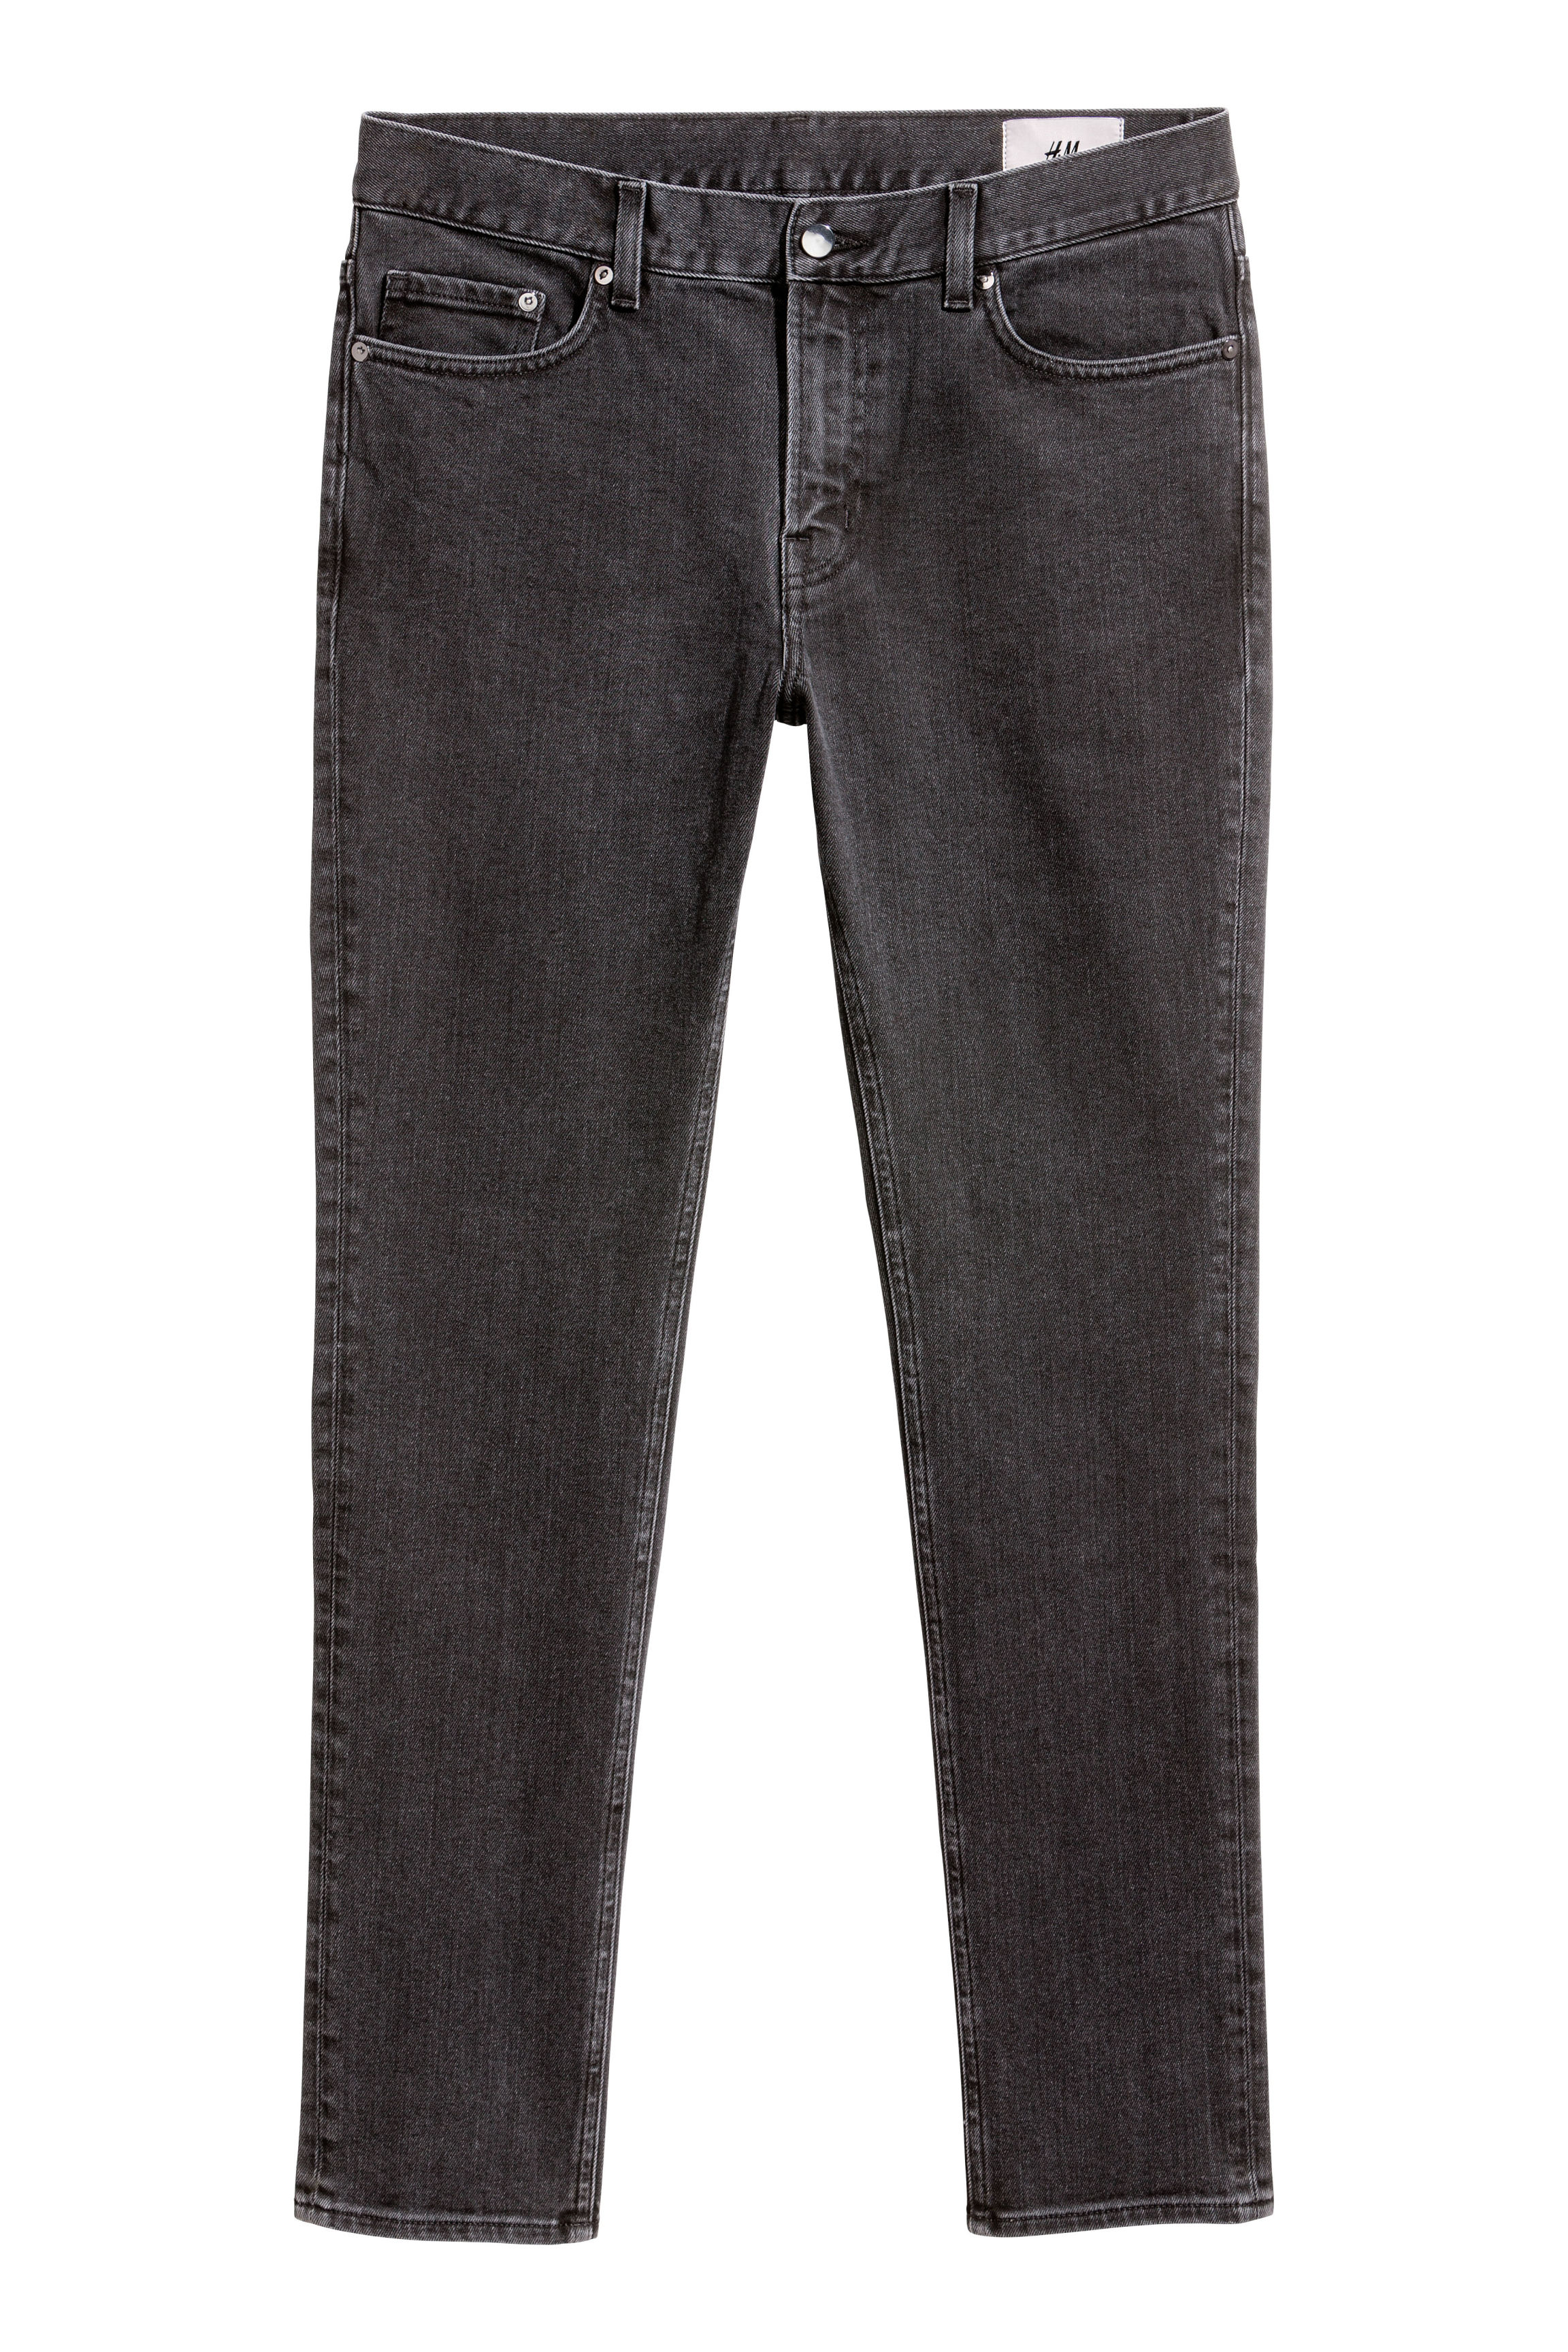 H&M Edition Black/Washed Skinny jeans